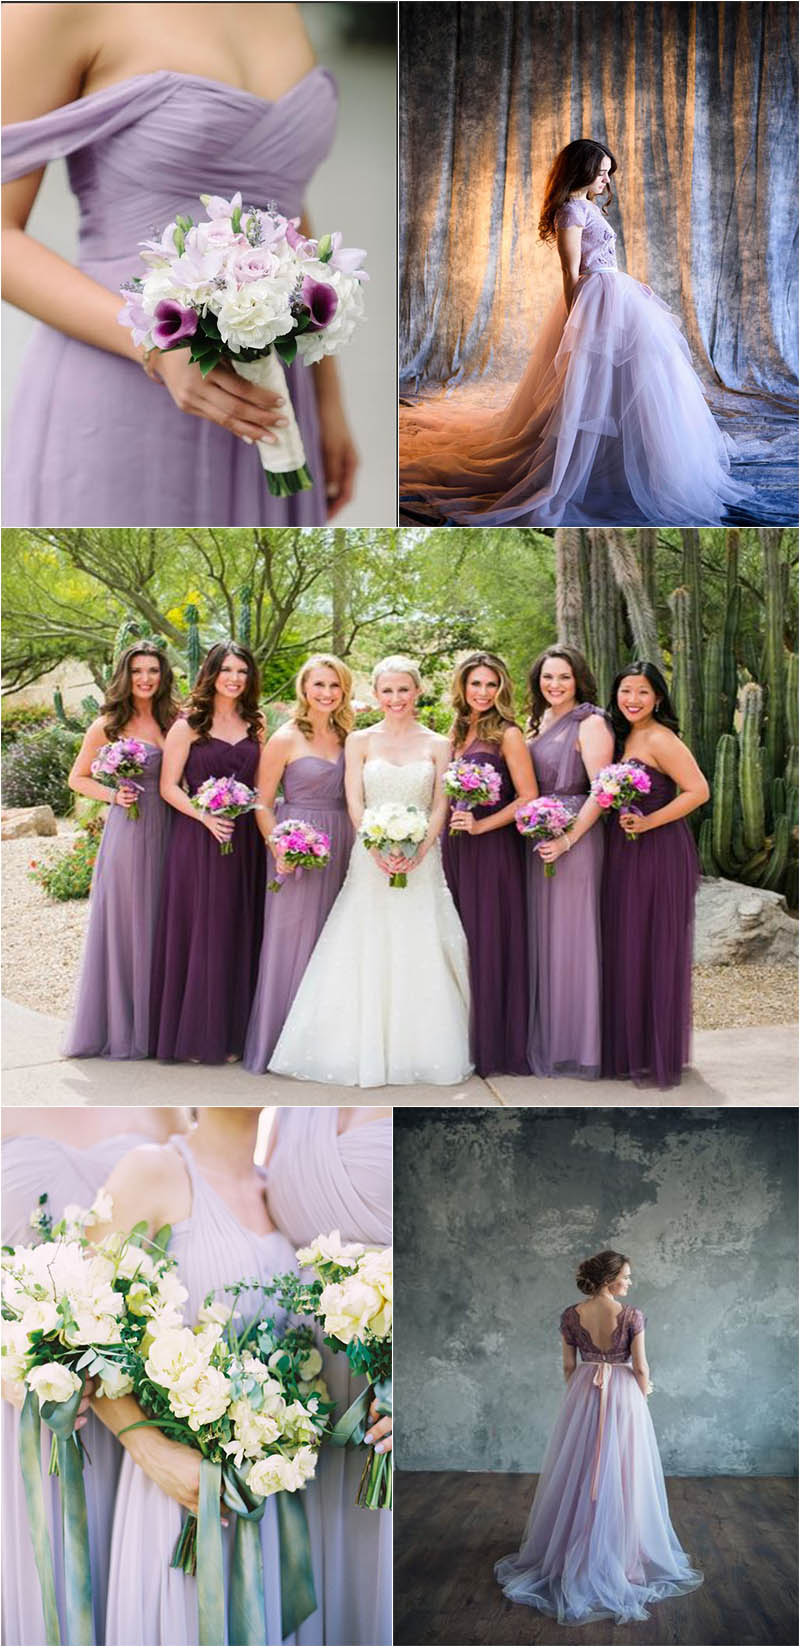 eye-popping violet wedding dresses